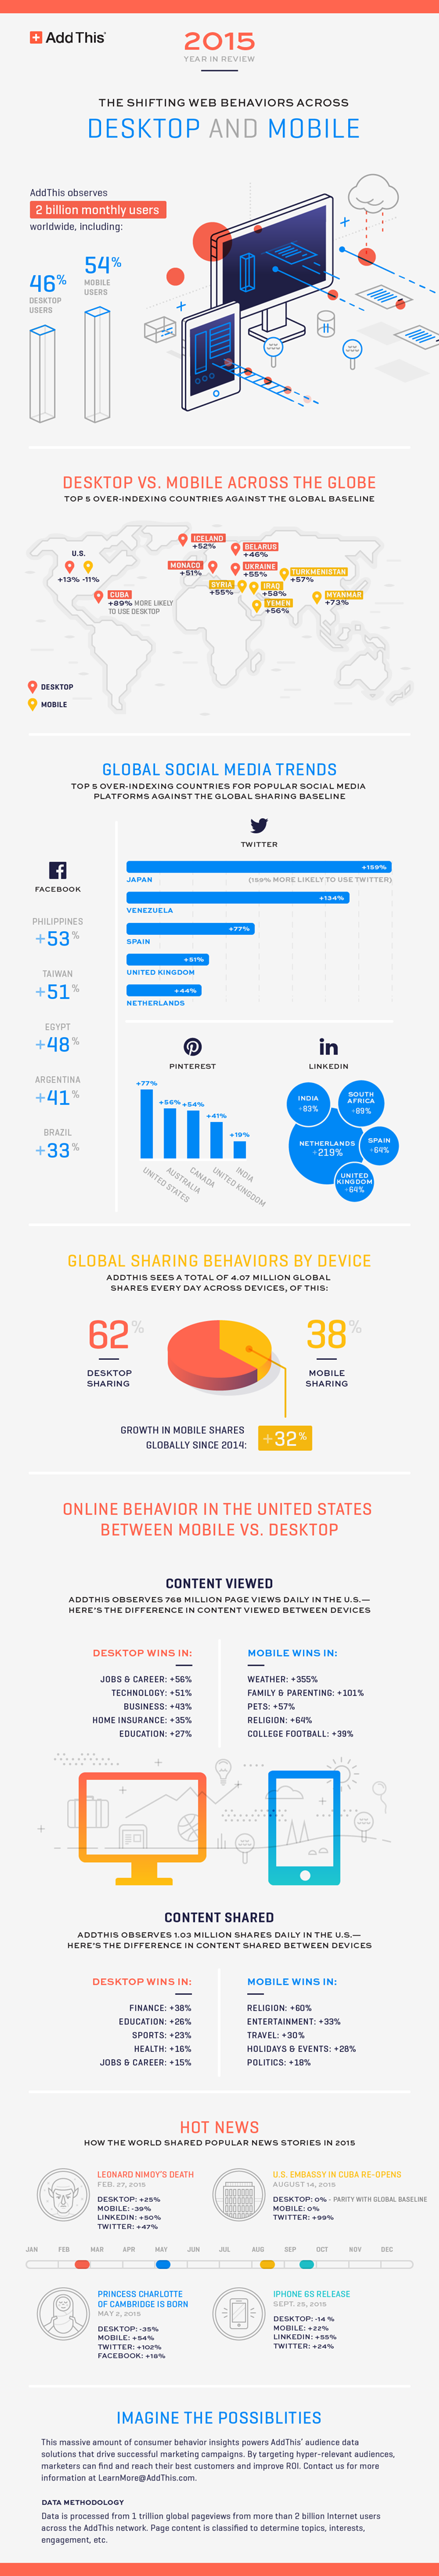 AddThis-2015-EOY-Infographic-700